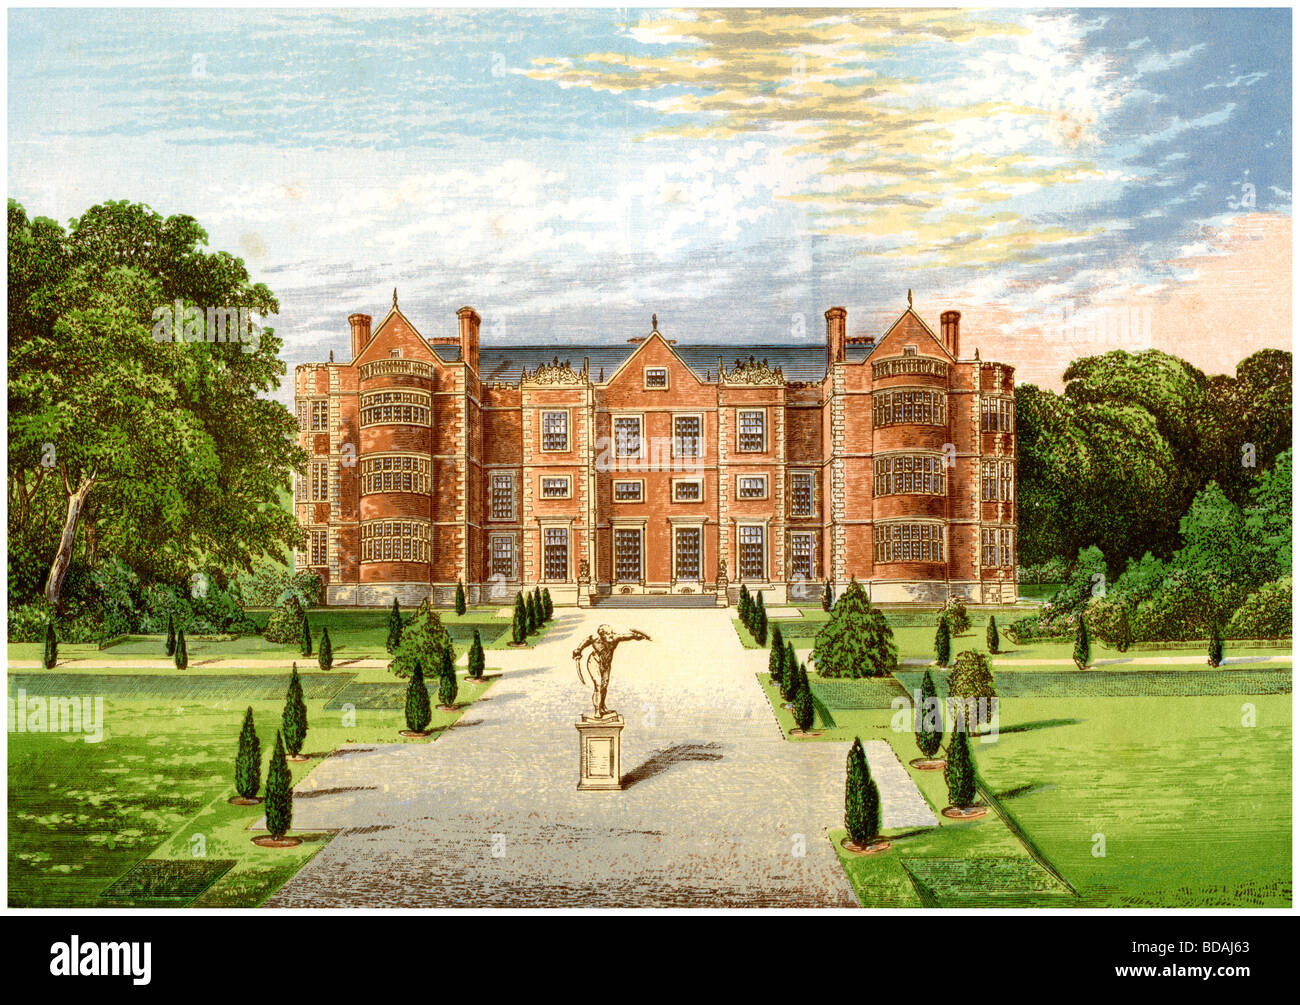 Burton Agnes Hall, Worcestershire, home of Baronet Boynton, c1880. Artist: Unknown - Stock Image